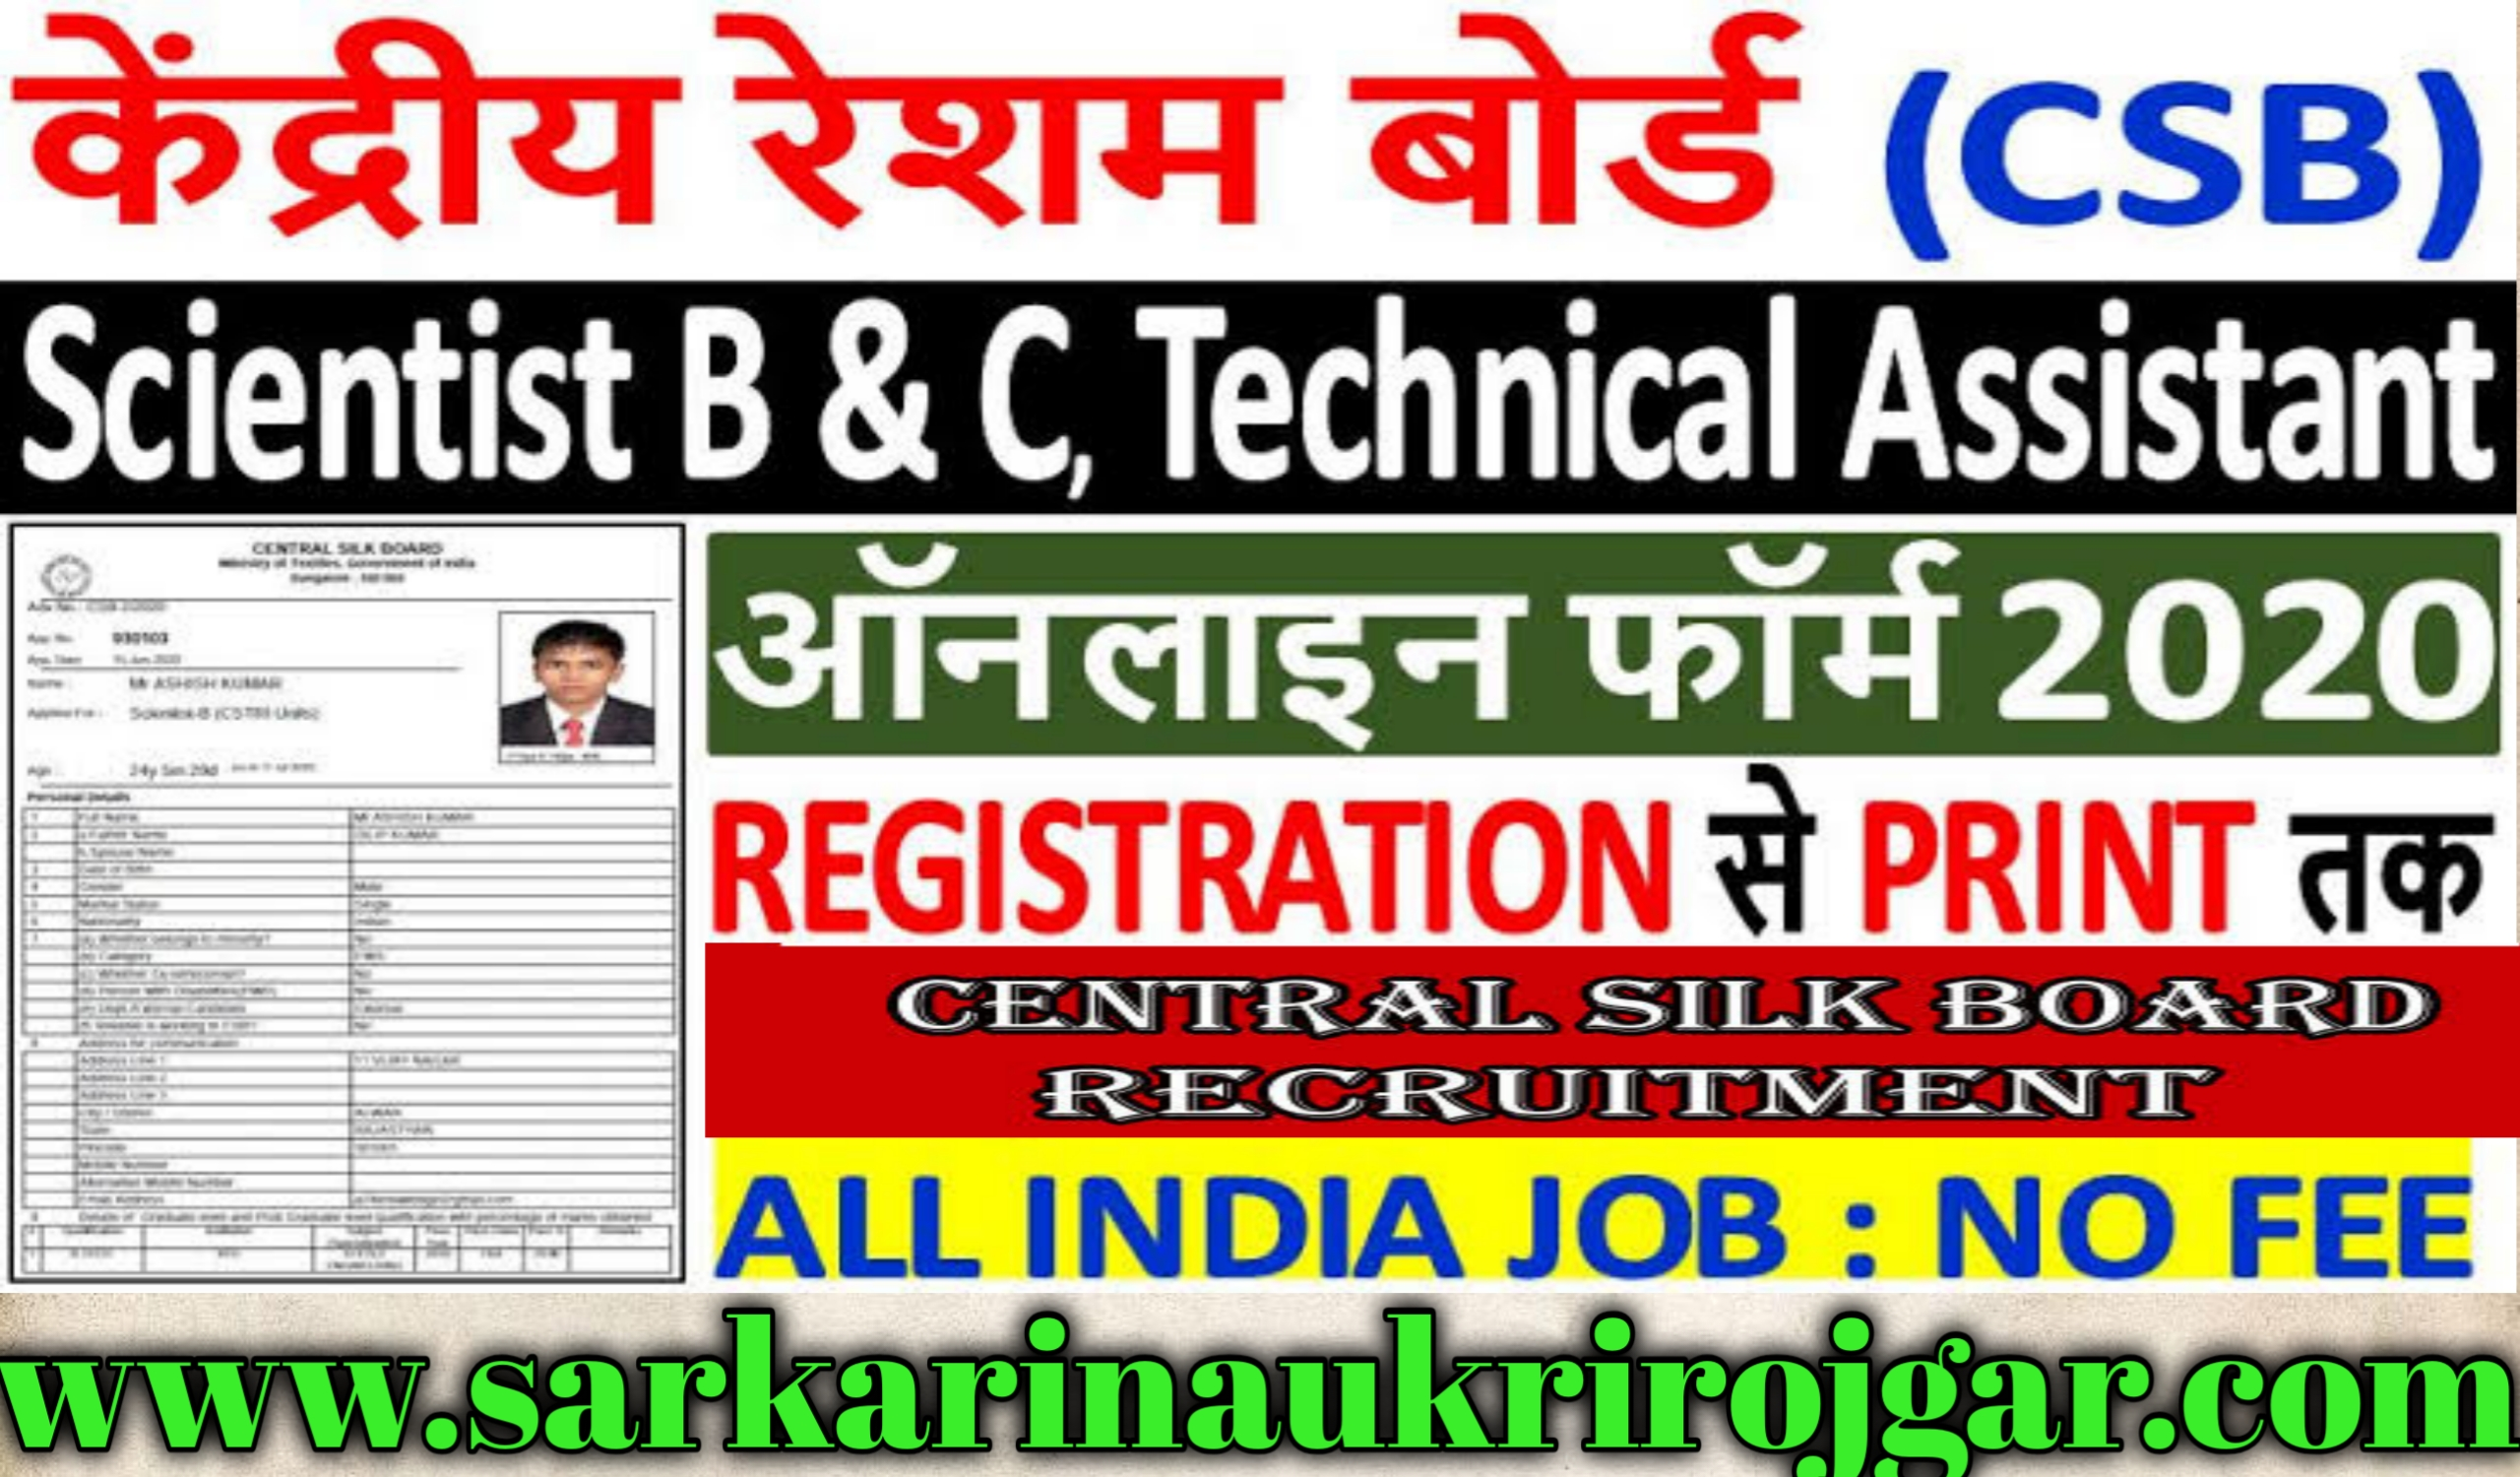 Central Silk Board Scientist, Assistant Recruitment 2020